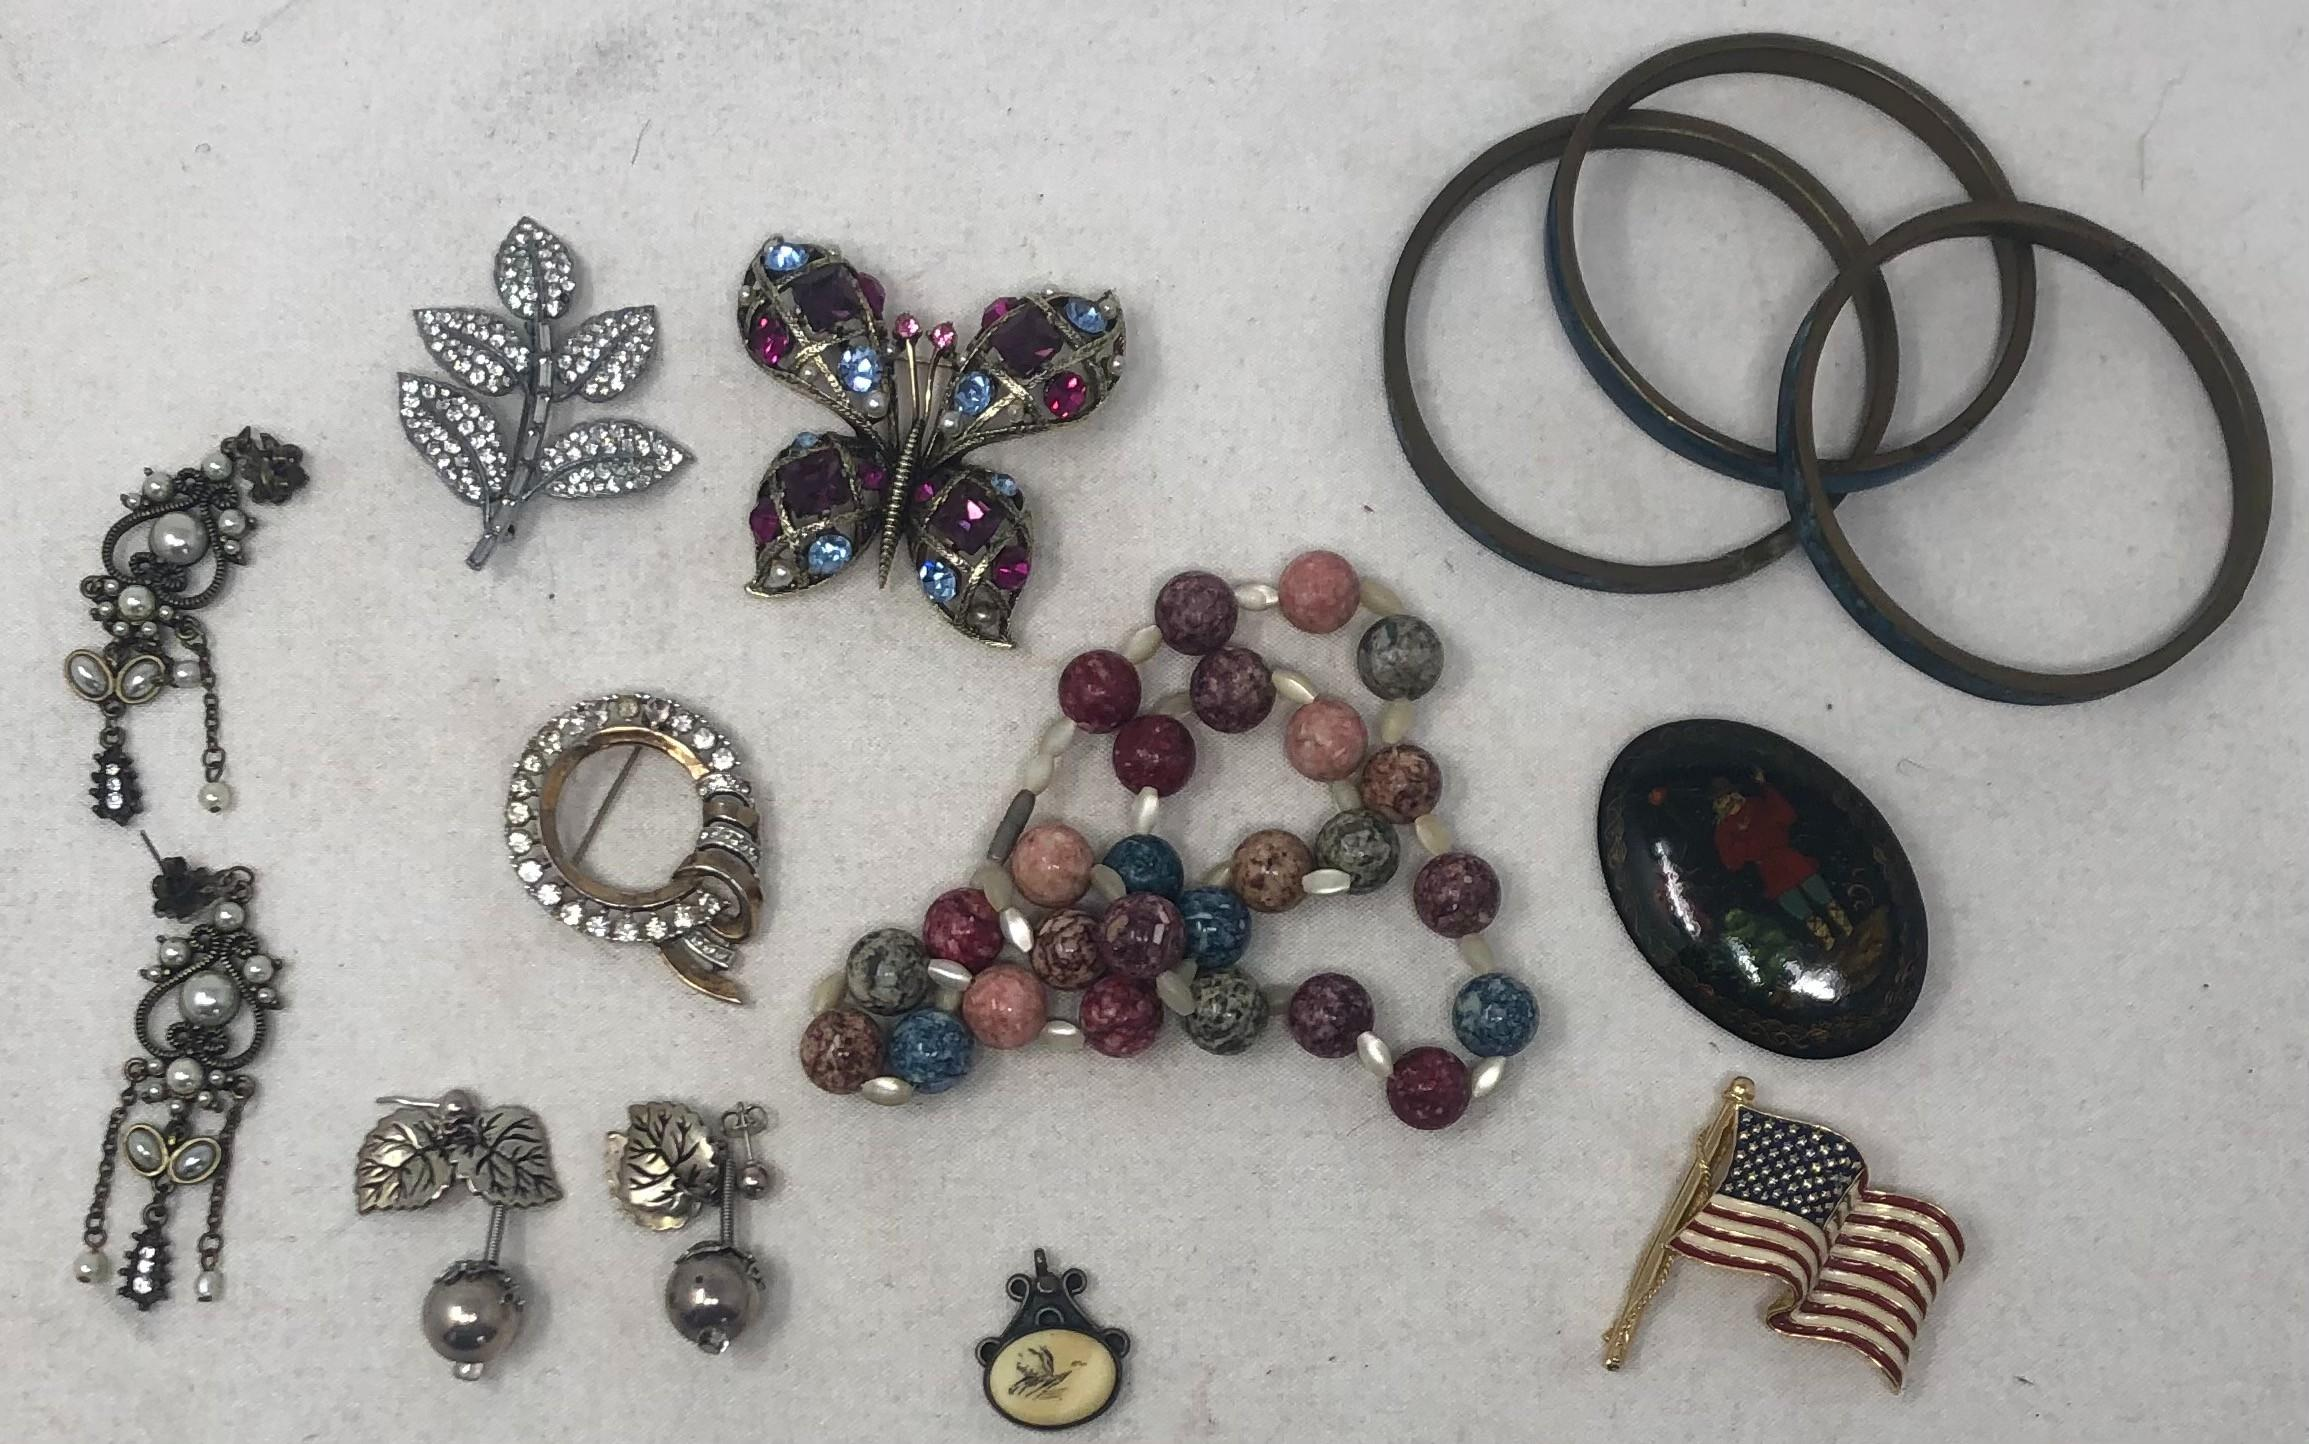 Group of costume jewelry including: Ciner colored rhinestone butterfly brooch; Indian inlaid bangle bracelets (3); Marble stone beads; Sterling Silver hanging earrings; Scrimshaw and silver pendant; Ciner American fla...